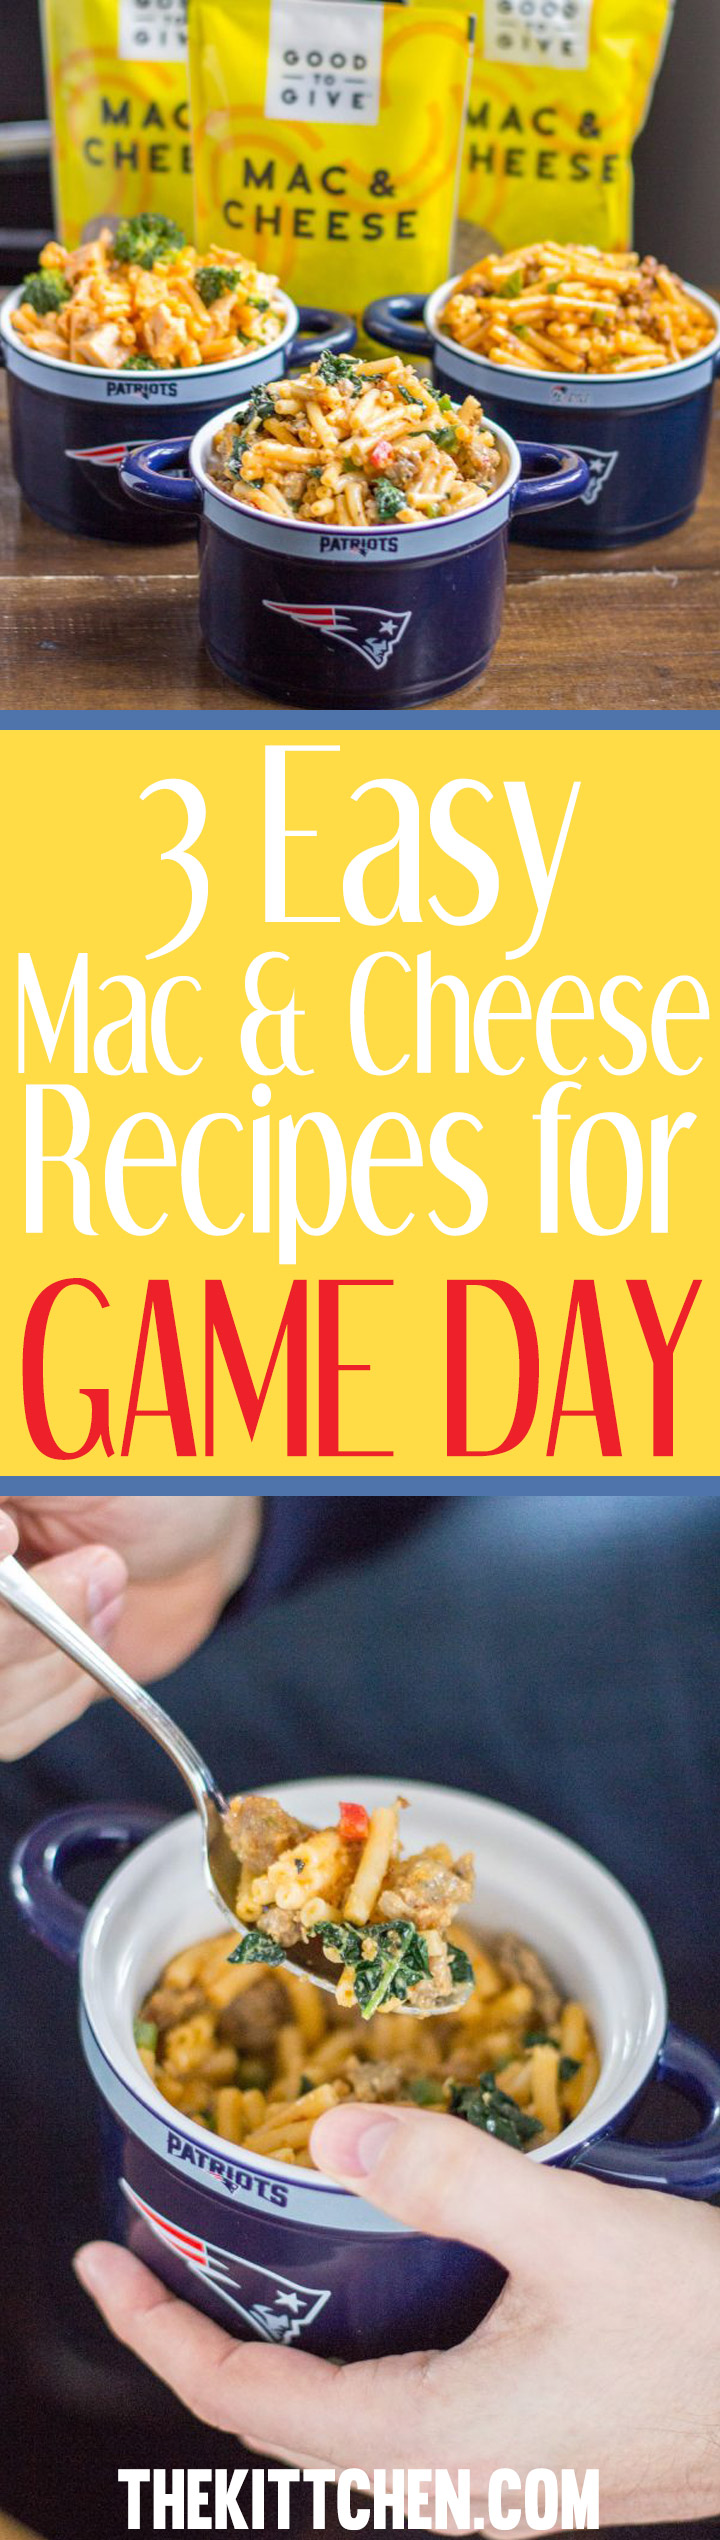 3 Easy Mac and Cheese Recipes made using boxed macaroni and cheese! A perfect weeknight dinner recipe.